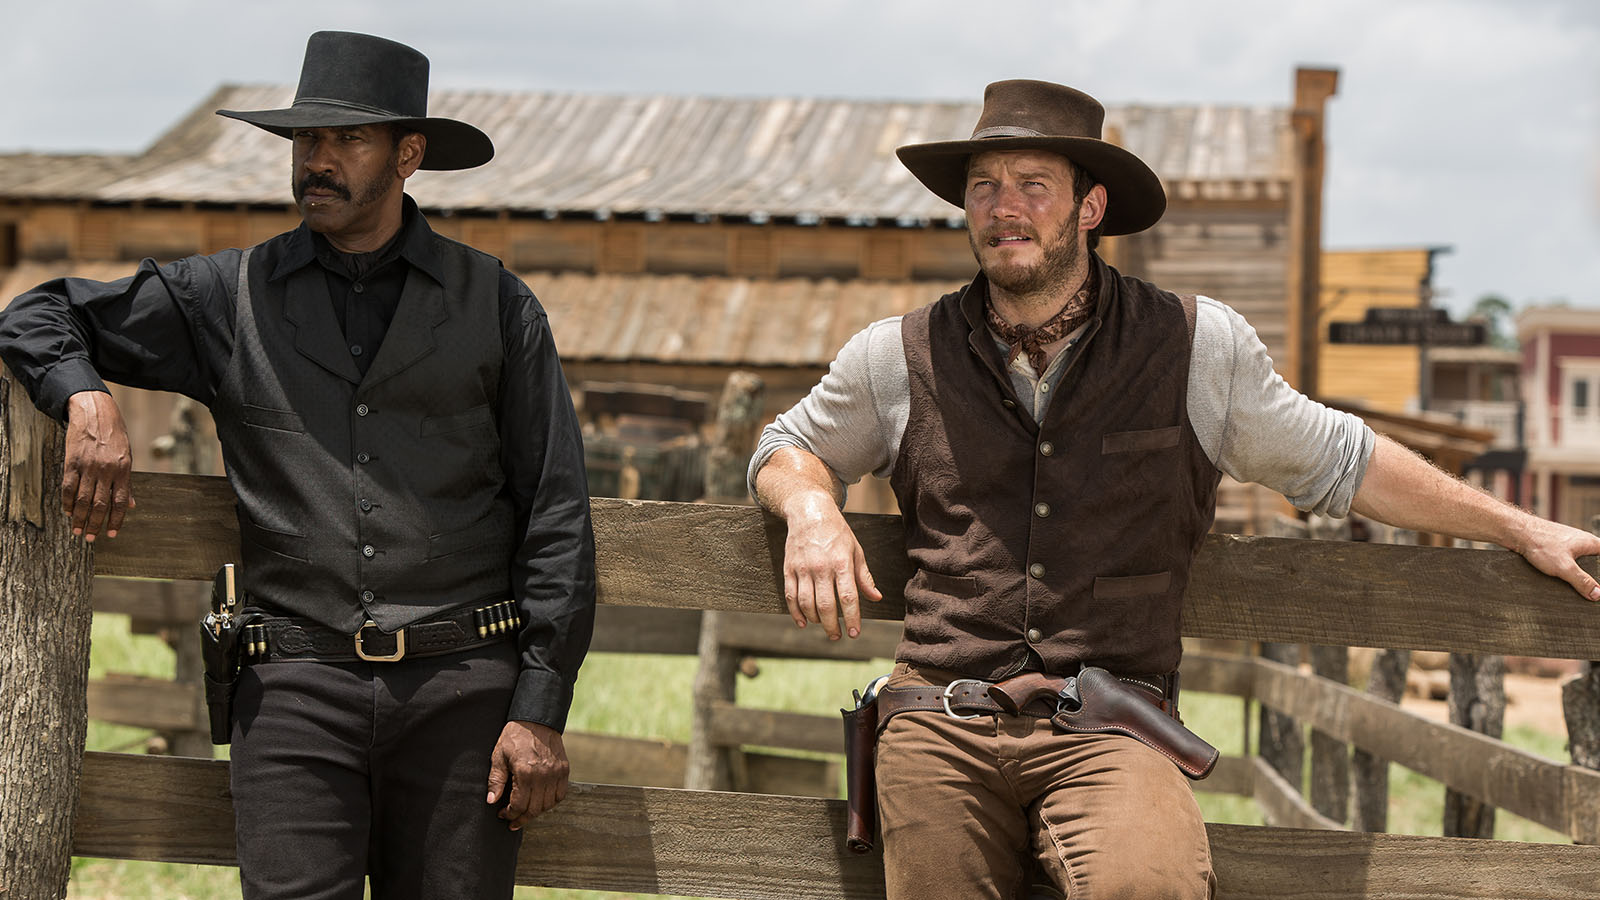 The-Magnificent-Seven-Tops-The-Box-Office-With-35-Million-Debut